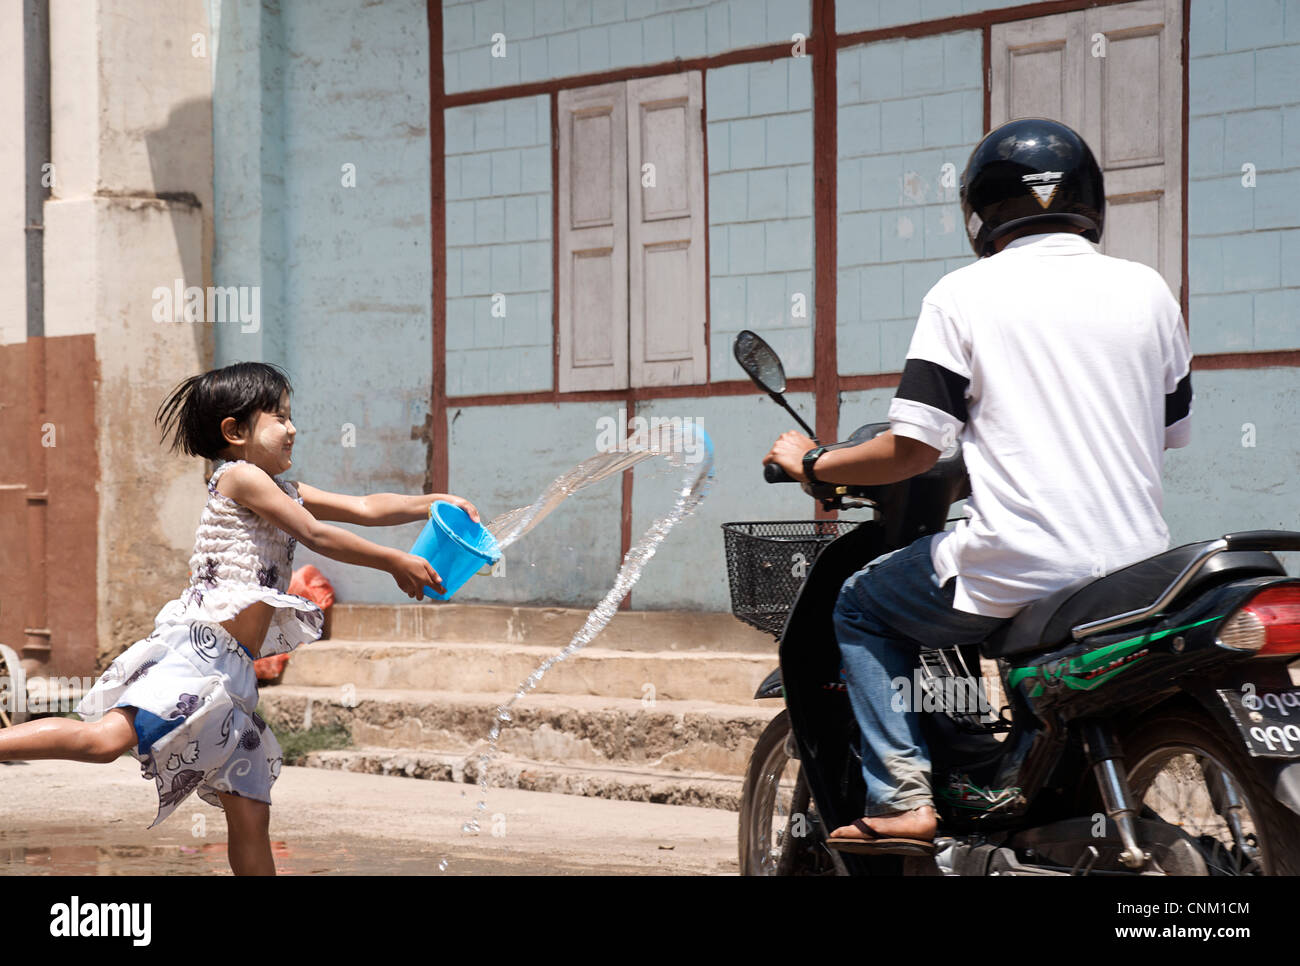 Burmese girl enjoying the water festival by throwing a bucket of water at a passing motorcyclist. Kalaw, Burma. - Stock Image